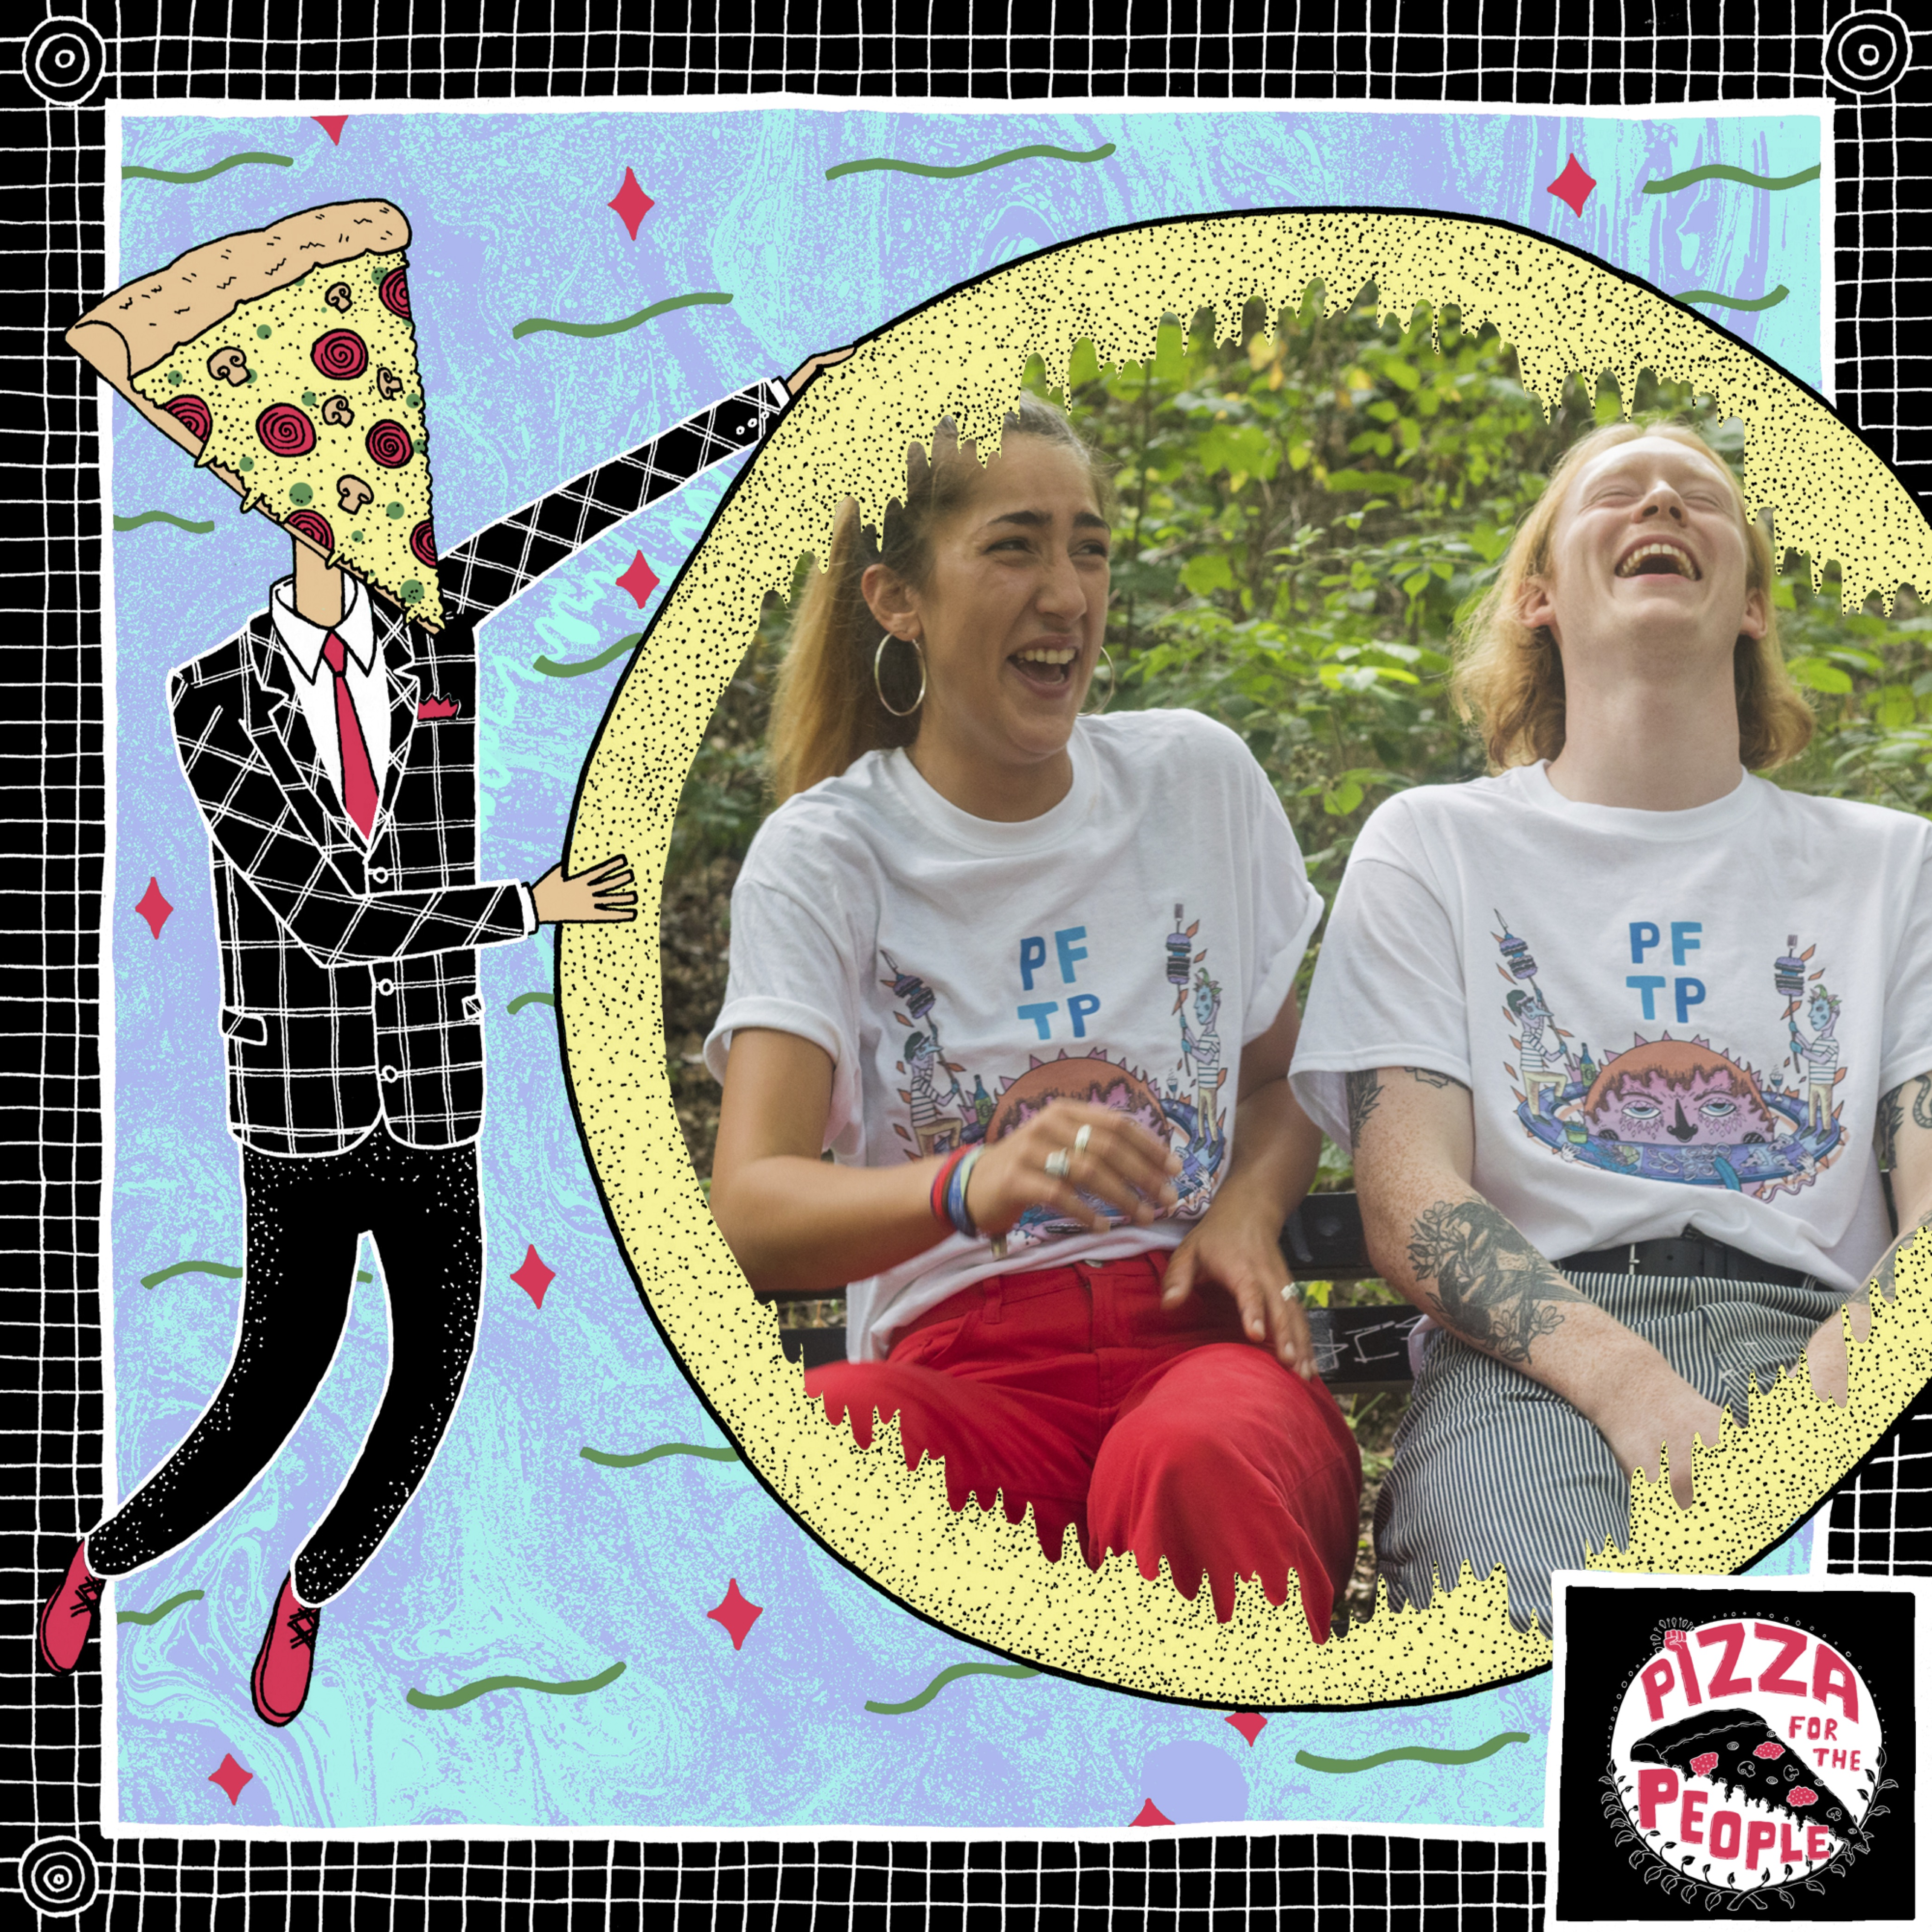 PFTP Greedy Tee - Pizza For The People